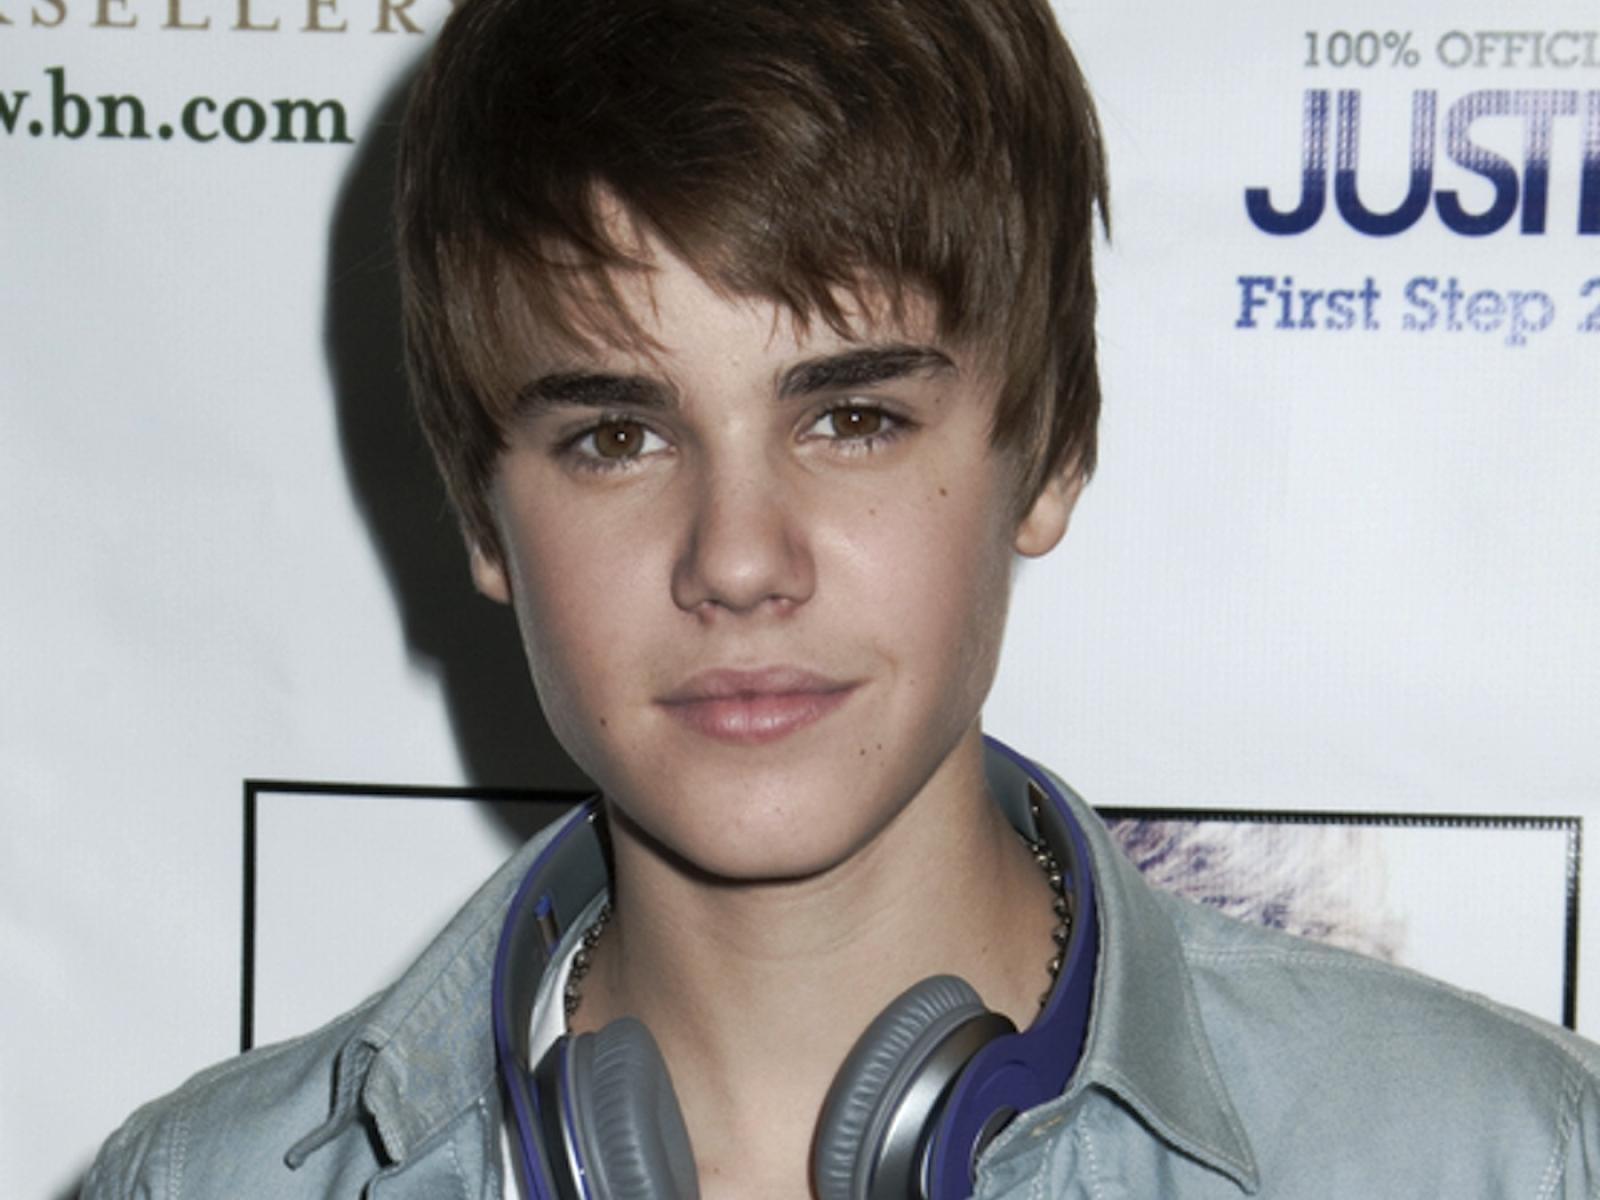 Justin Bieber Music Hd Wallpapers 1600×1200 Pixel Wallpapers : High